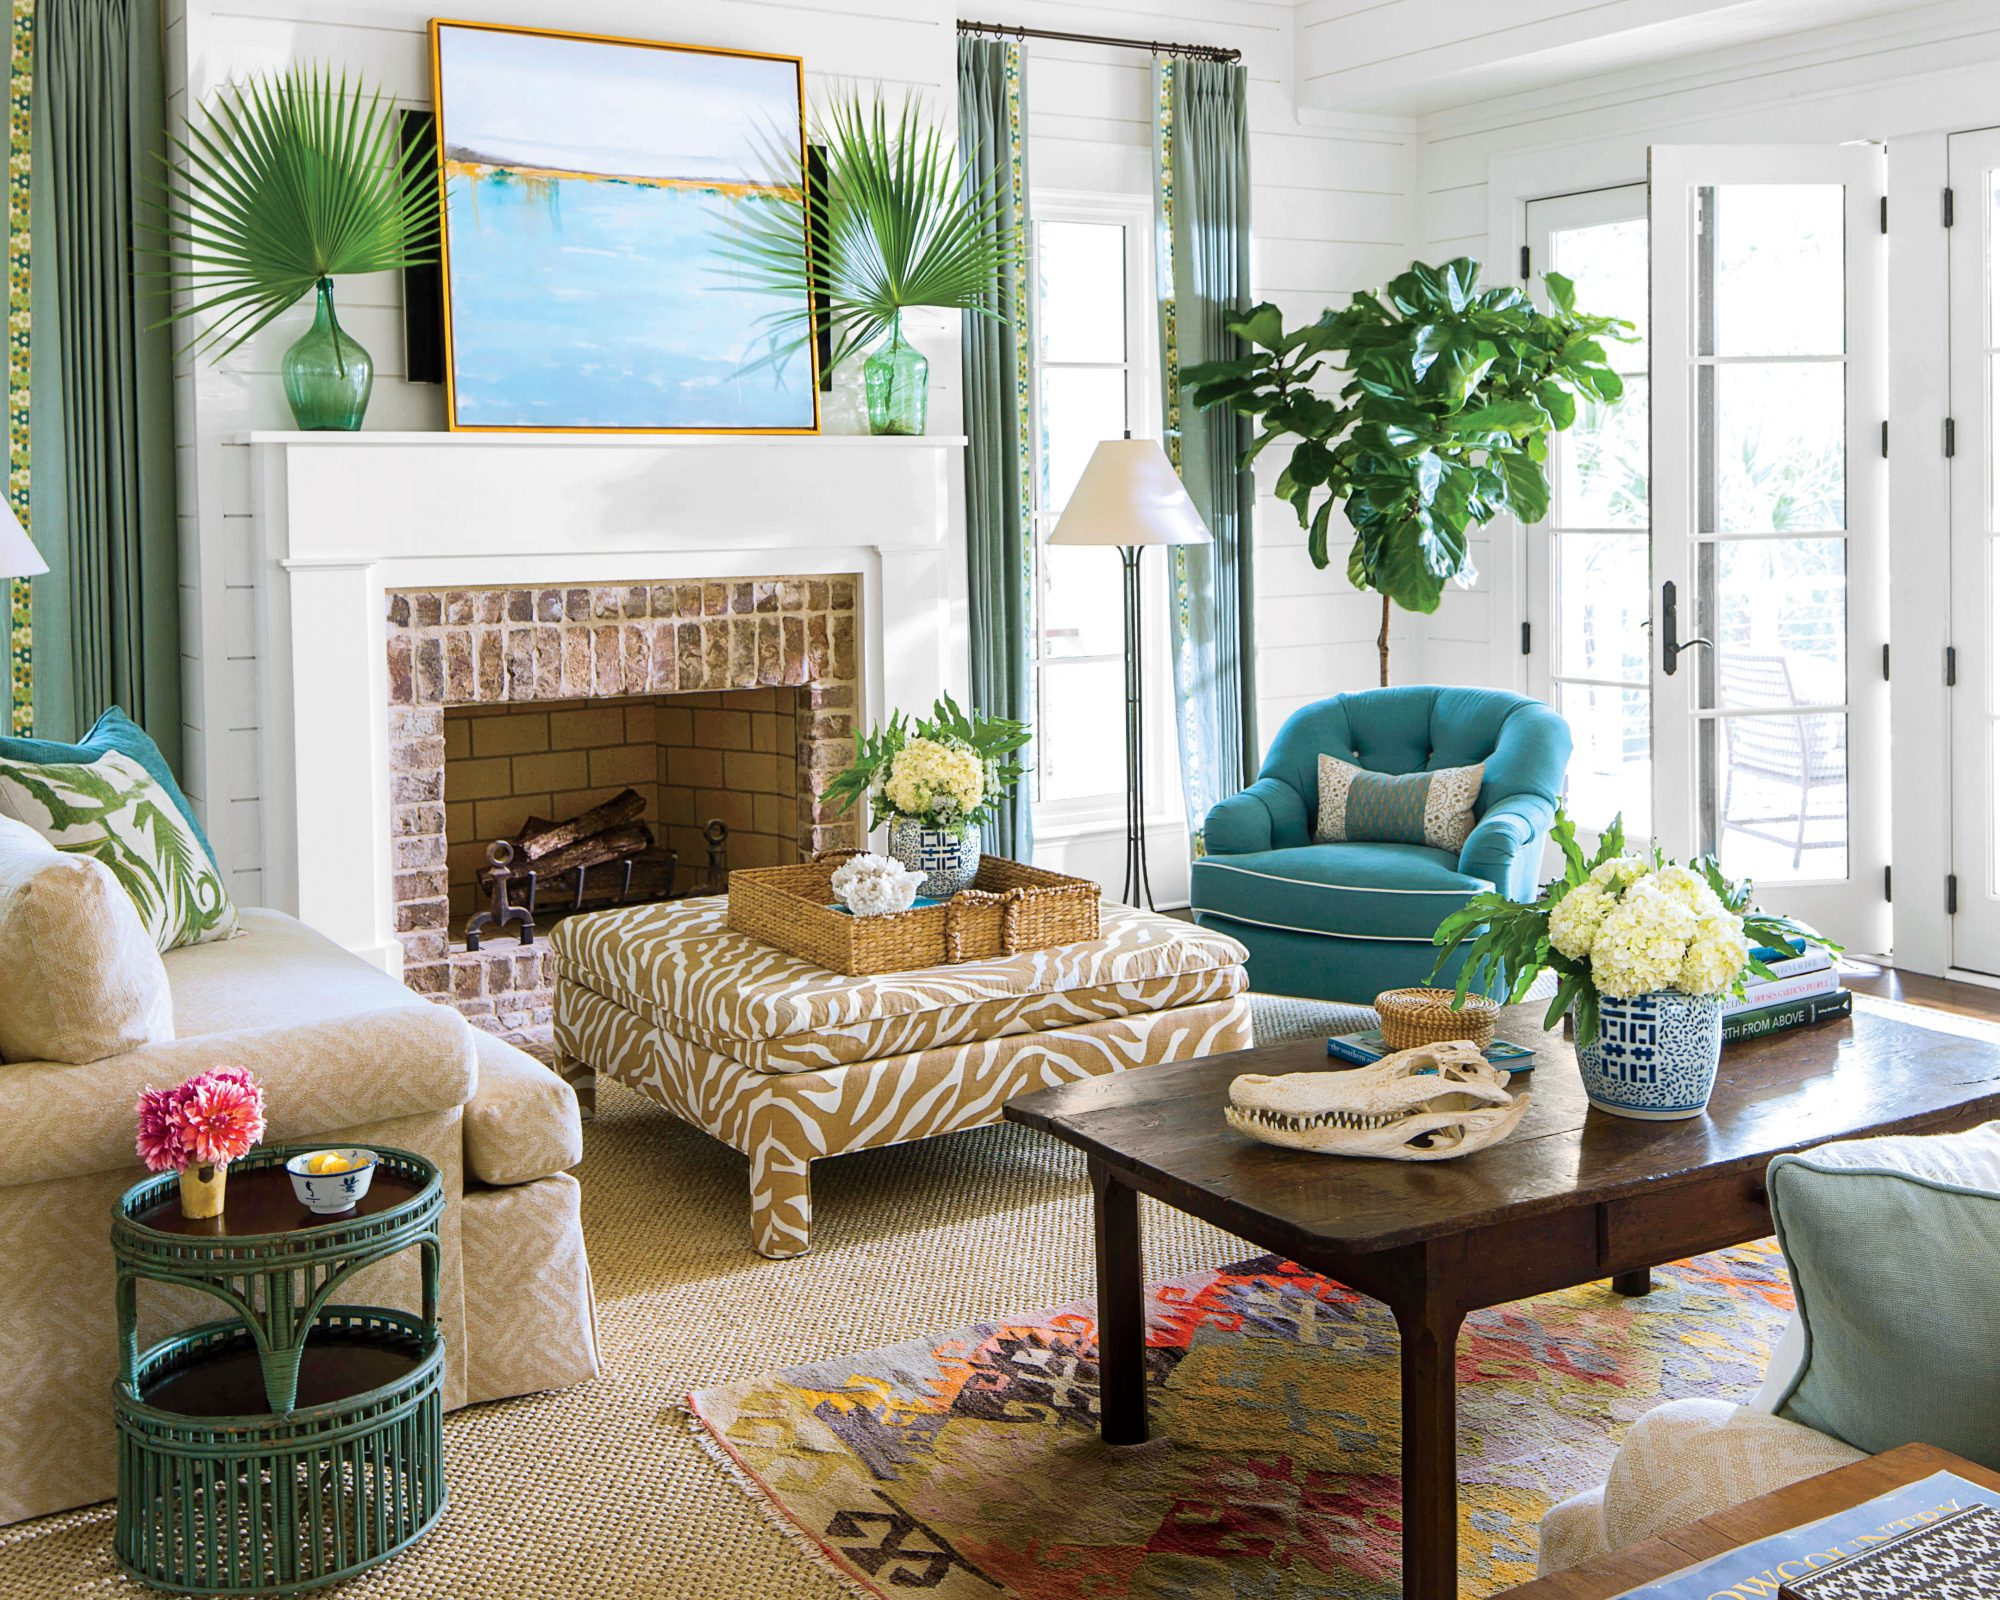 How To Decorate Living Room Endearing 106 Living Room Decorating Ideas  Southern Living Decorating Design